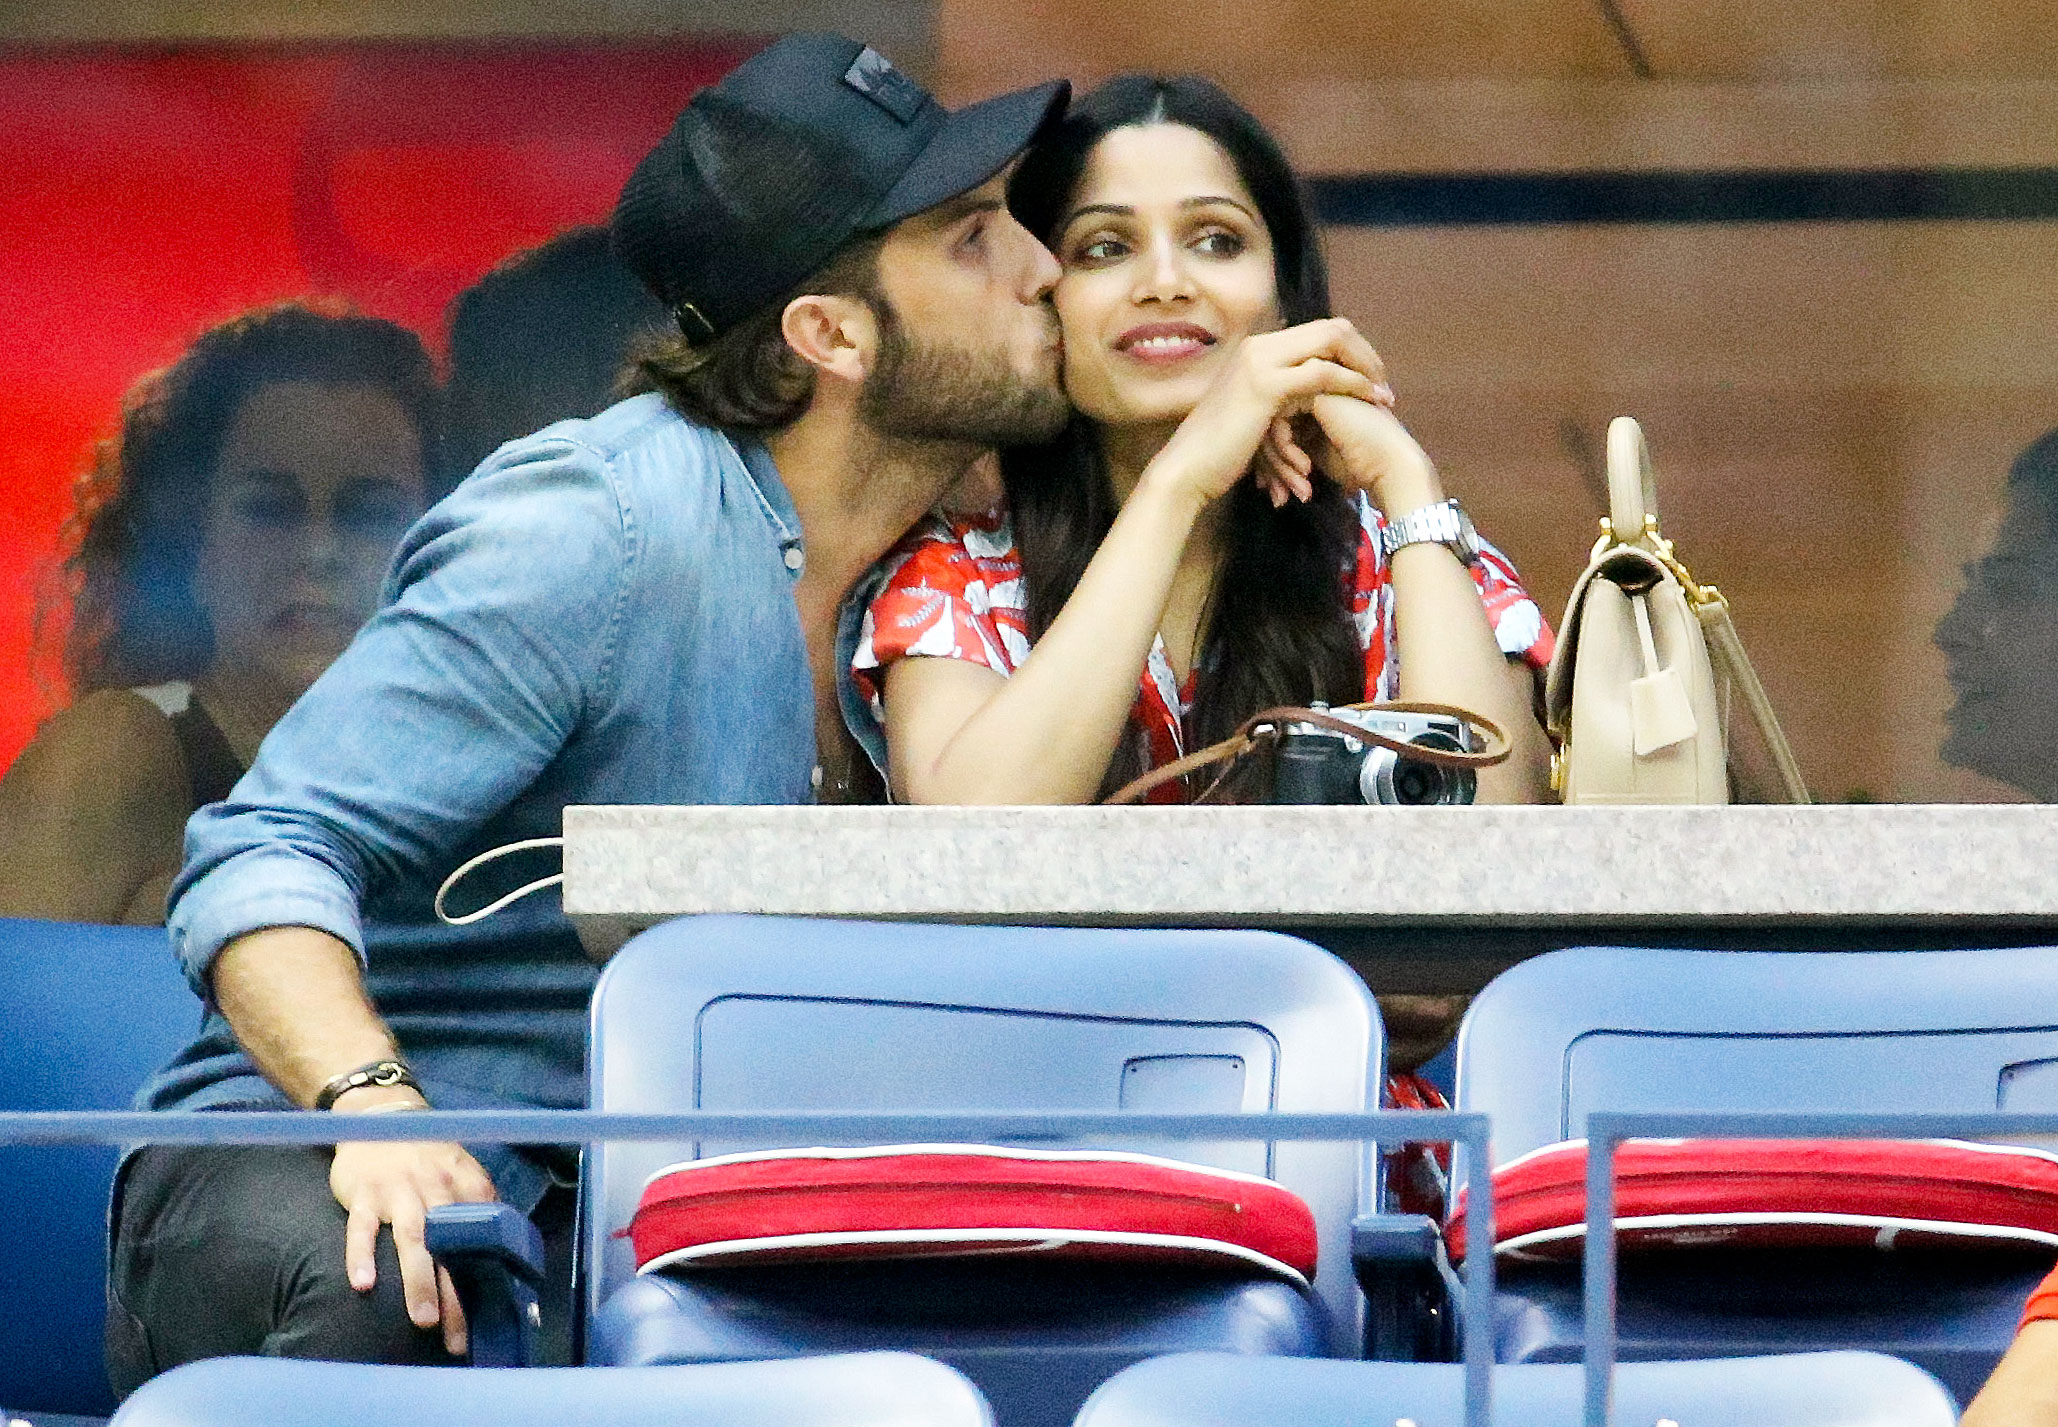 Freida Pinto Us Open 2018 - Pinto received a sweet smooch from her boyfriend, Cory Tran, on September 2.